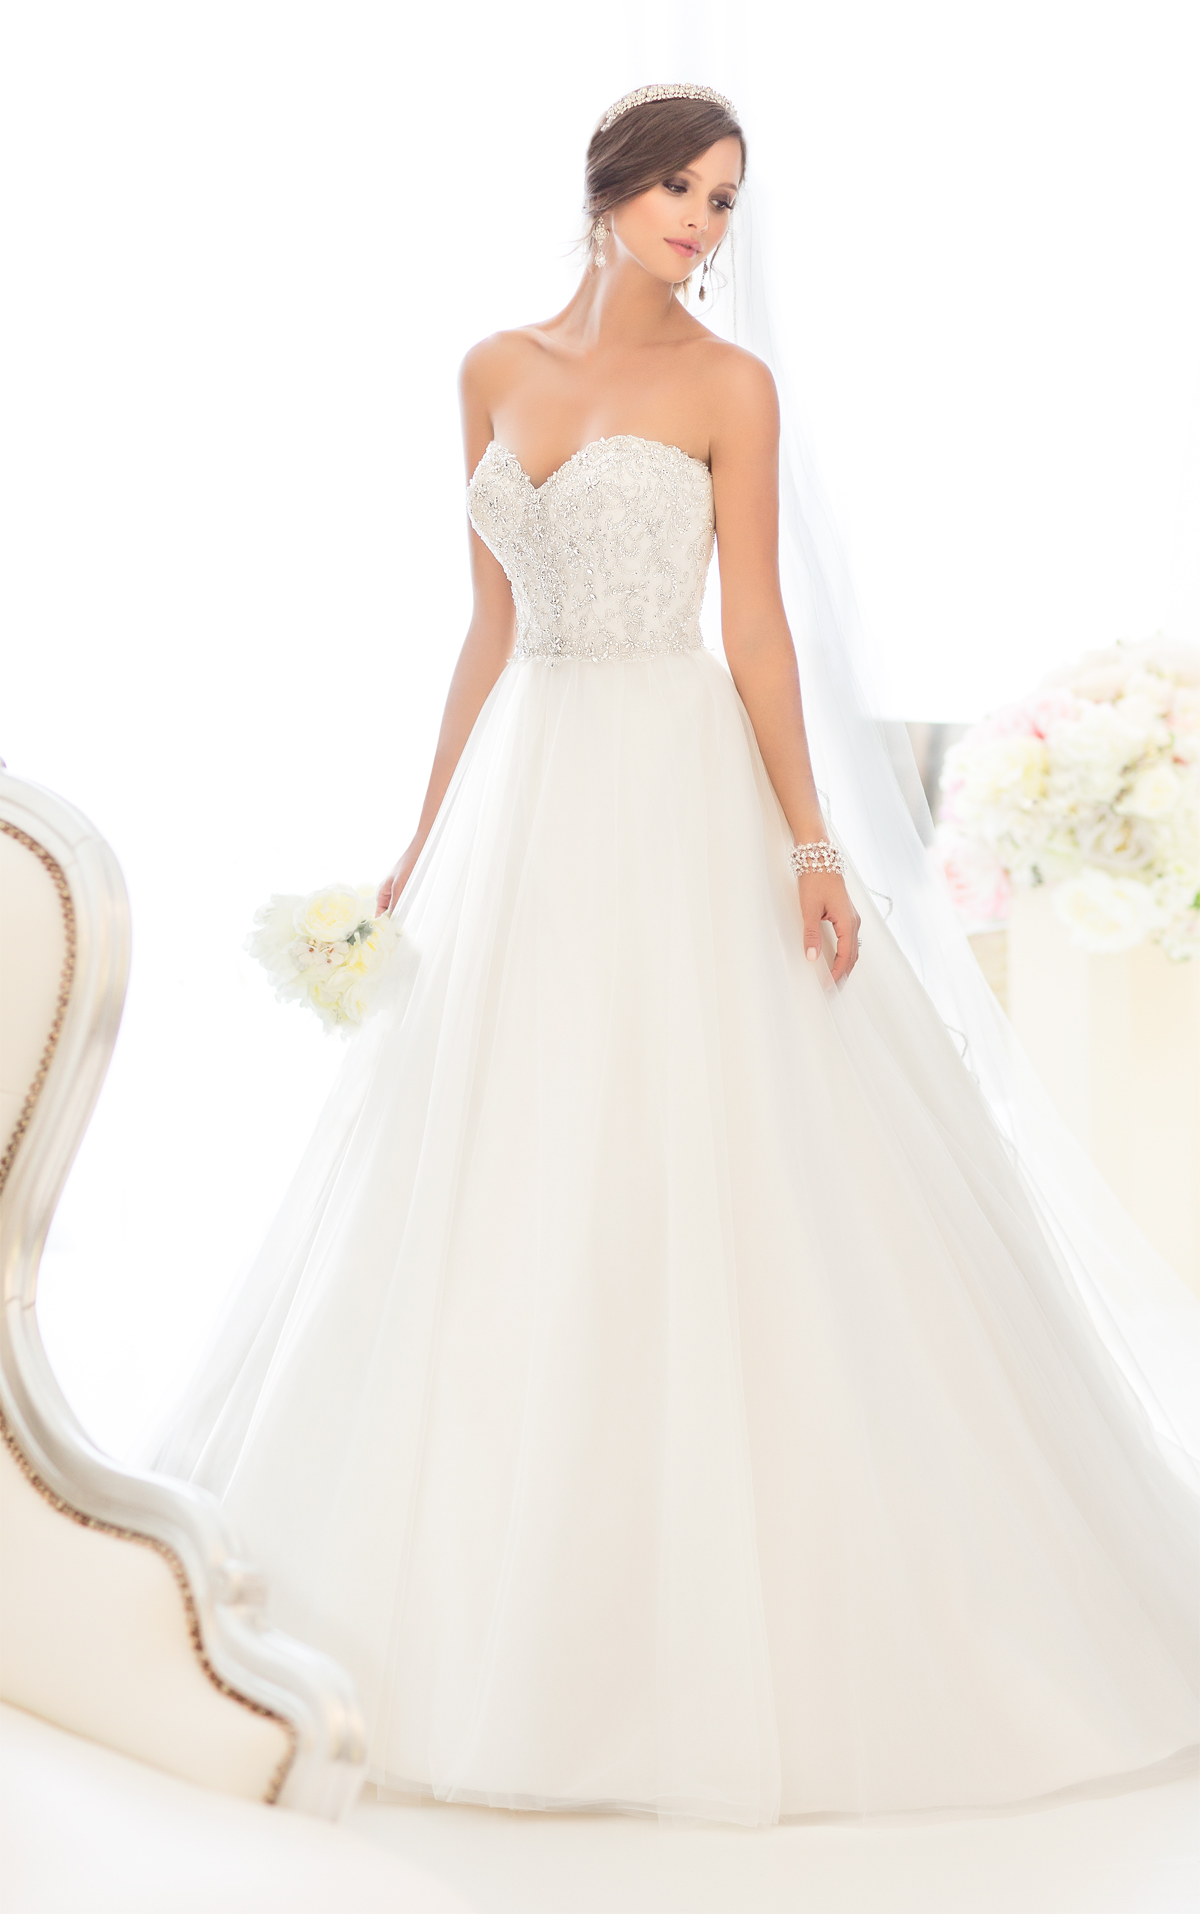 Best Wedding Dress Designers Australia Wedding Short Dresses